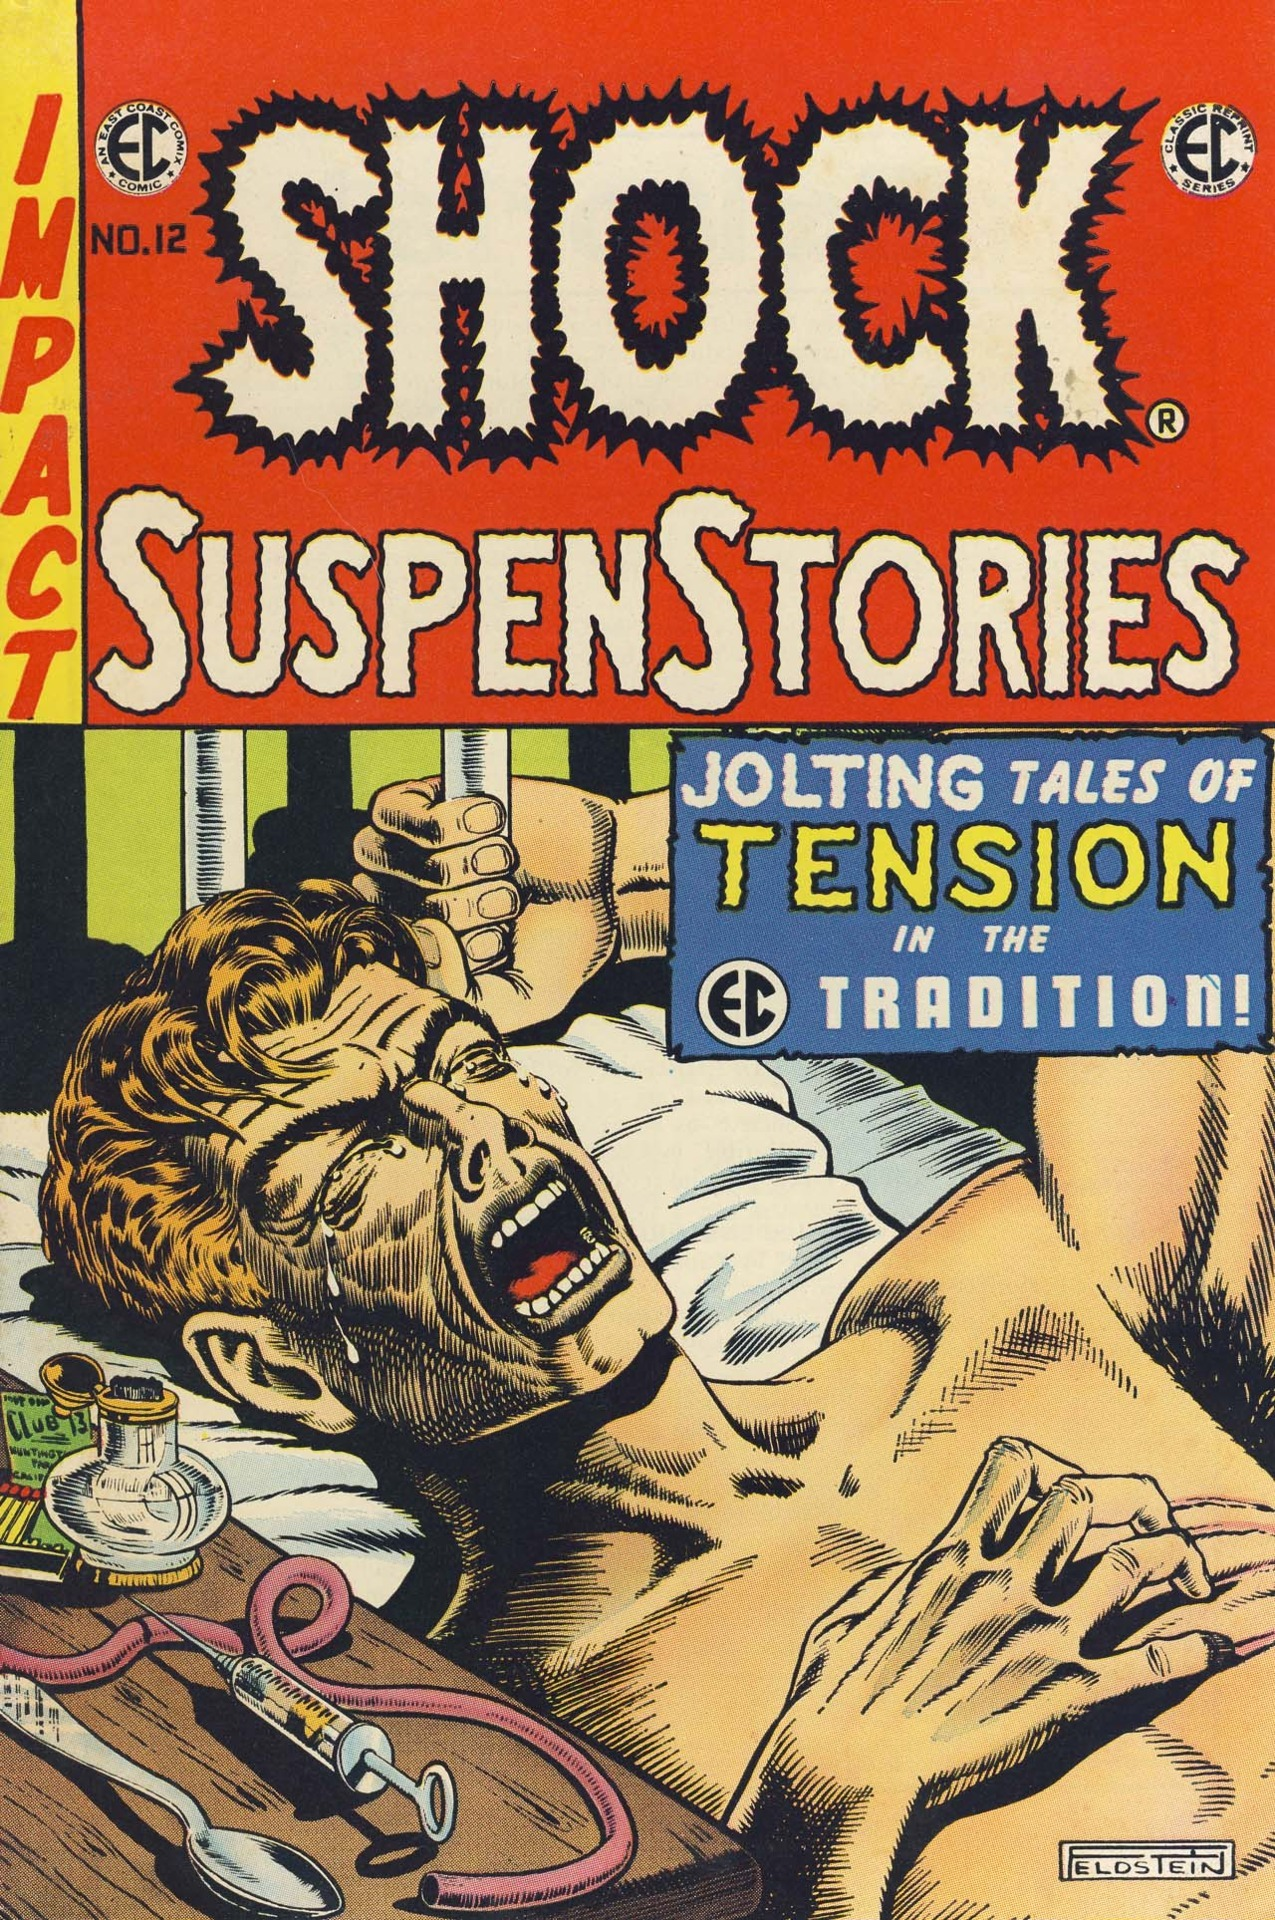 comicbookcovers:  Shock SupenStories #12, January 1954, cover by Albert B. Feldstein